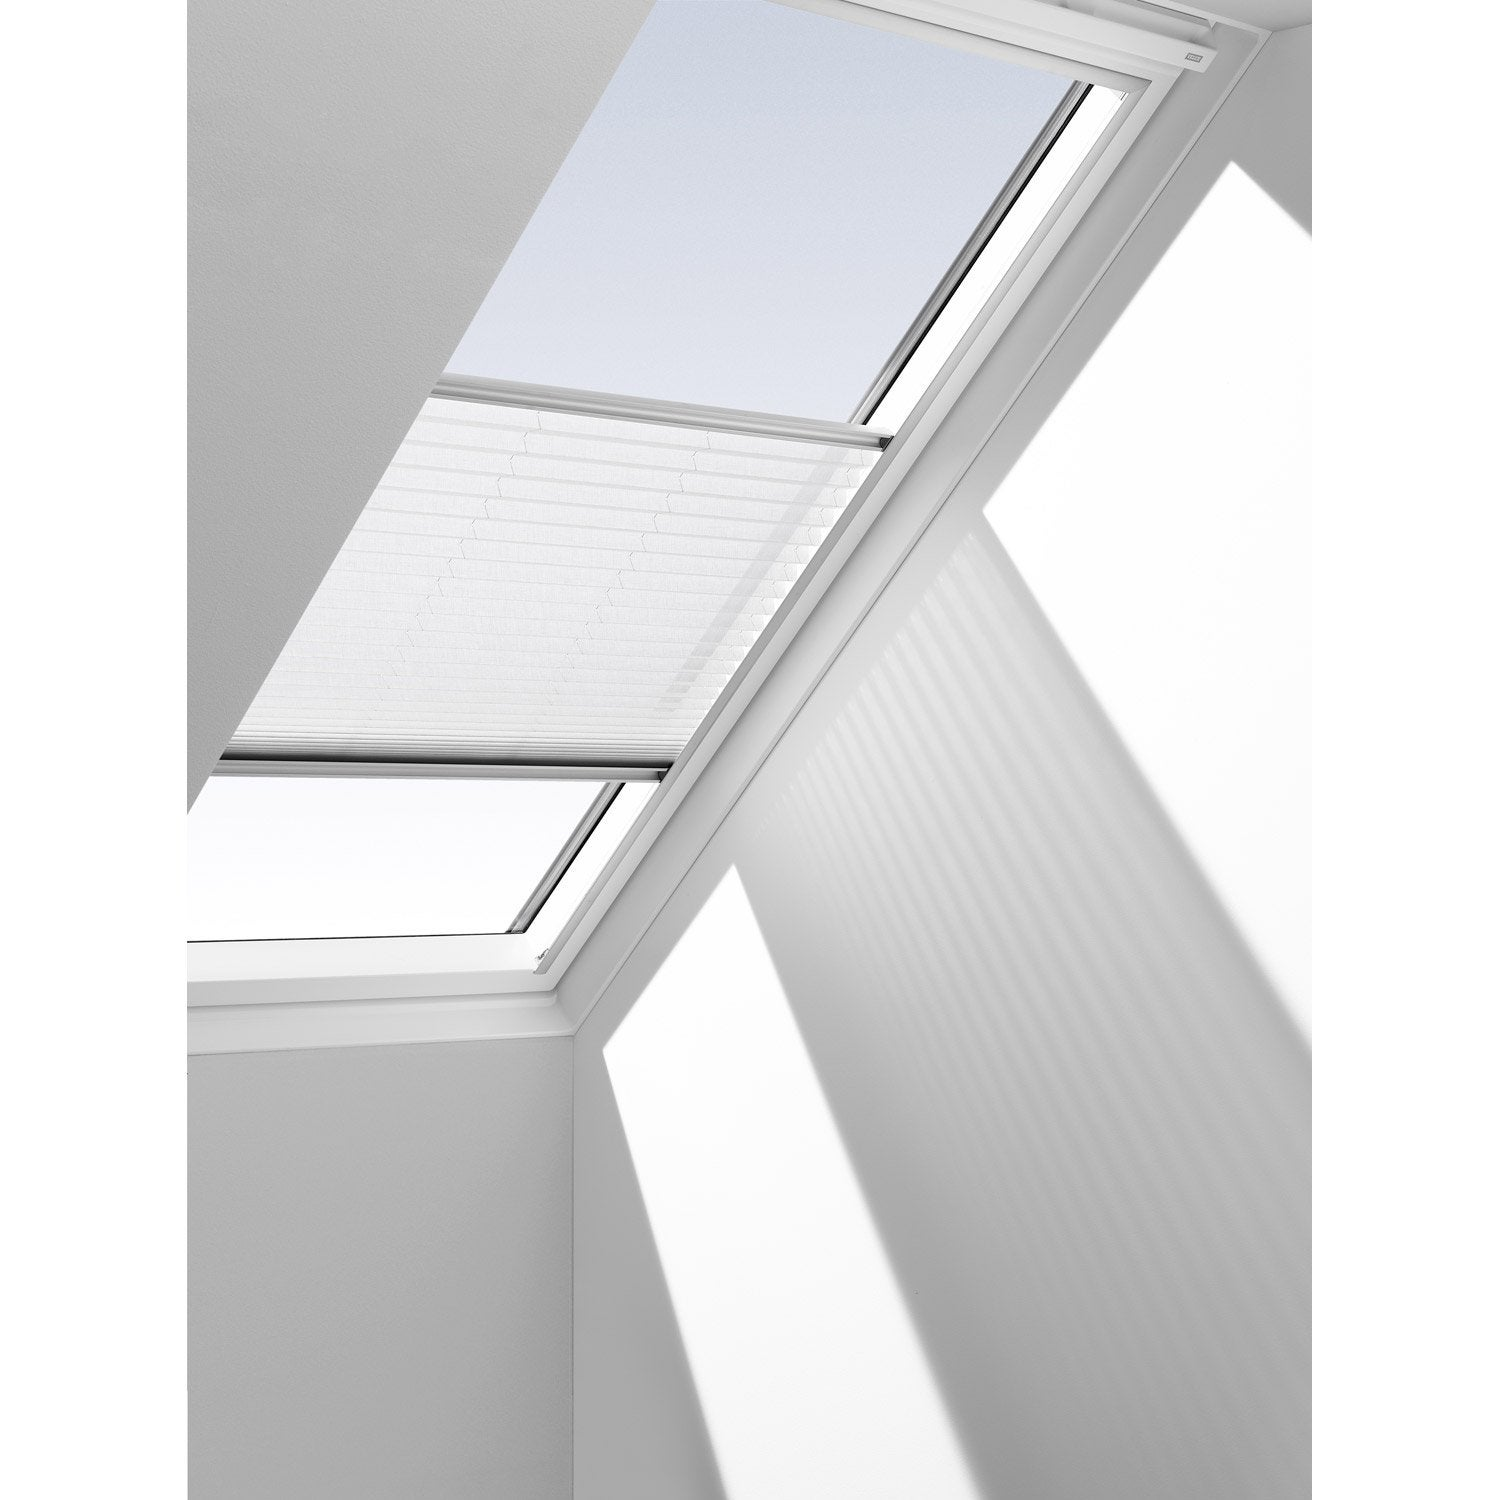 Perche velux leroy merlin gse with perche velux leroy merlin plan duaccs au magasin leroy - Leroy merlin theix ...